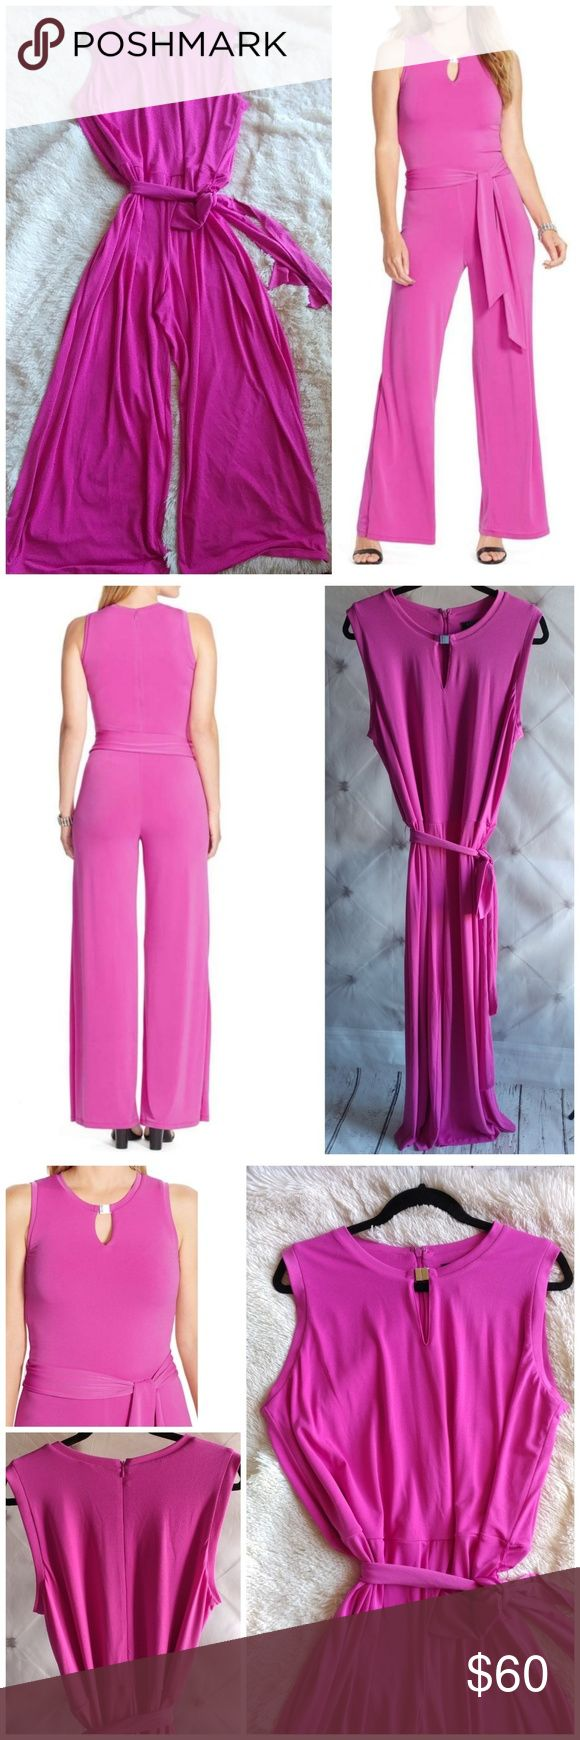 """Lauren Ralph Lauren Keyhole Matte Jersey Jumpsuit Vibrant pink hue jumpsuit. Cut to slim figure before flattering into fluid wide cutlets.  A buckled keyhole accents the neck while a slash clinched the waist for flattering definition. Back zip closure. Crew neck Sleeveless Lined bodice Dry clean. 95% polyester 5% elastane Lenght: 56"""" Inseam: 33"""" Bust: 42"""" Waist: 46"""" Leg opening: 28 1/2"""" Lauren Ralph Lauren Pants Jumpsuits & Rompers"""